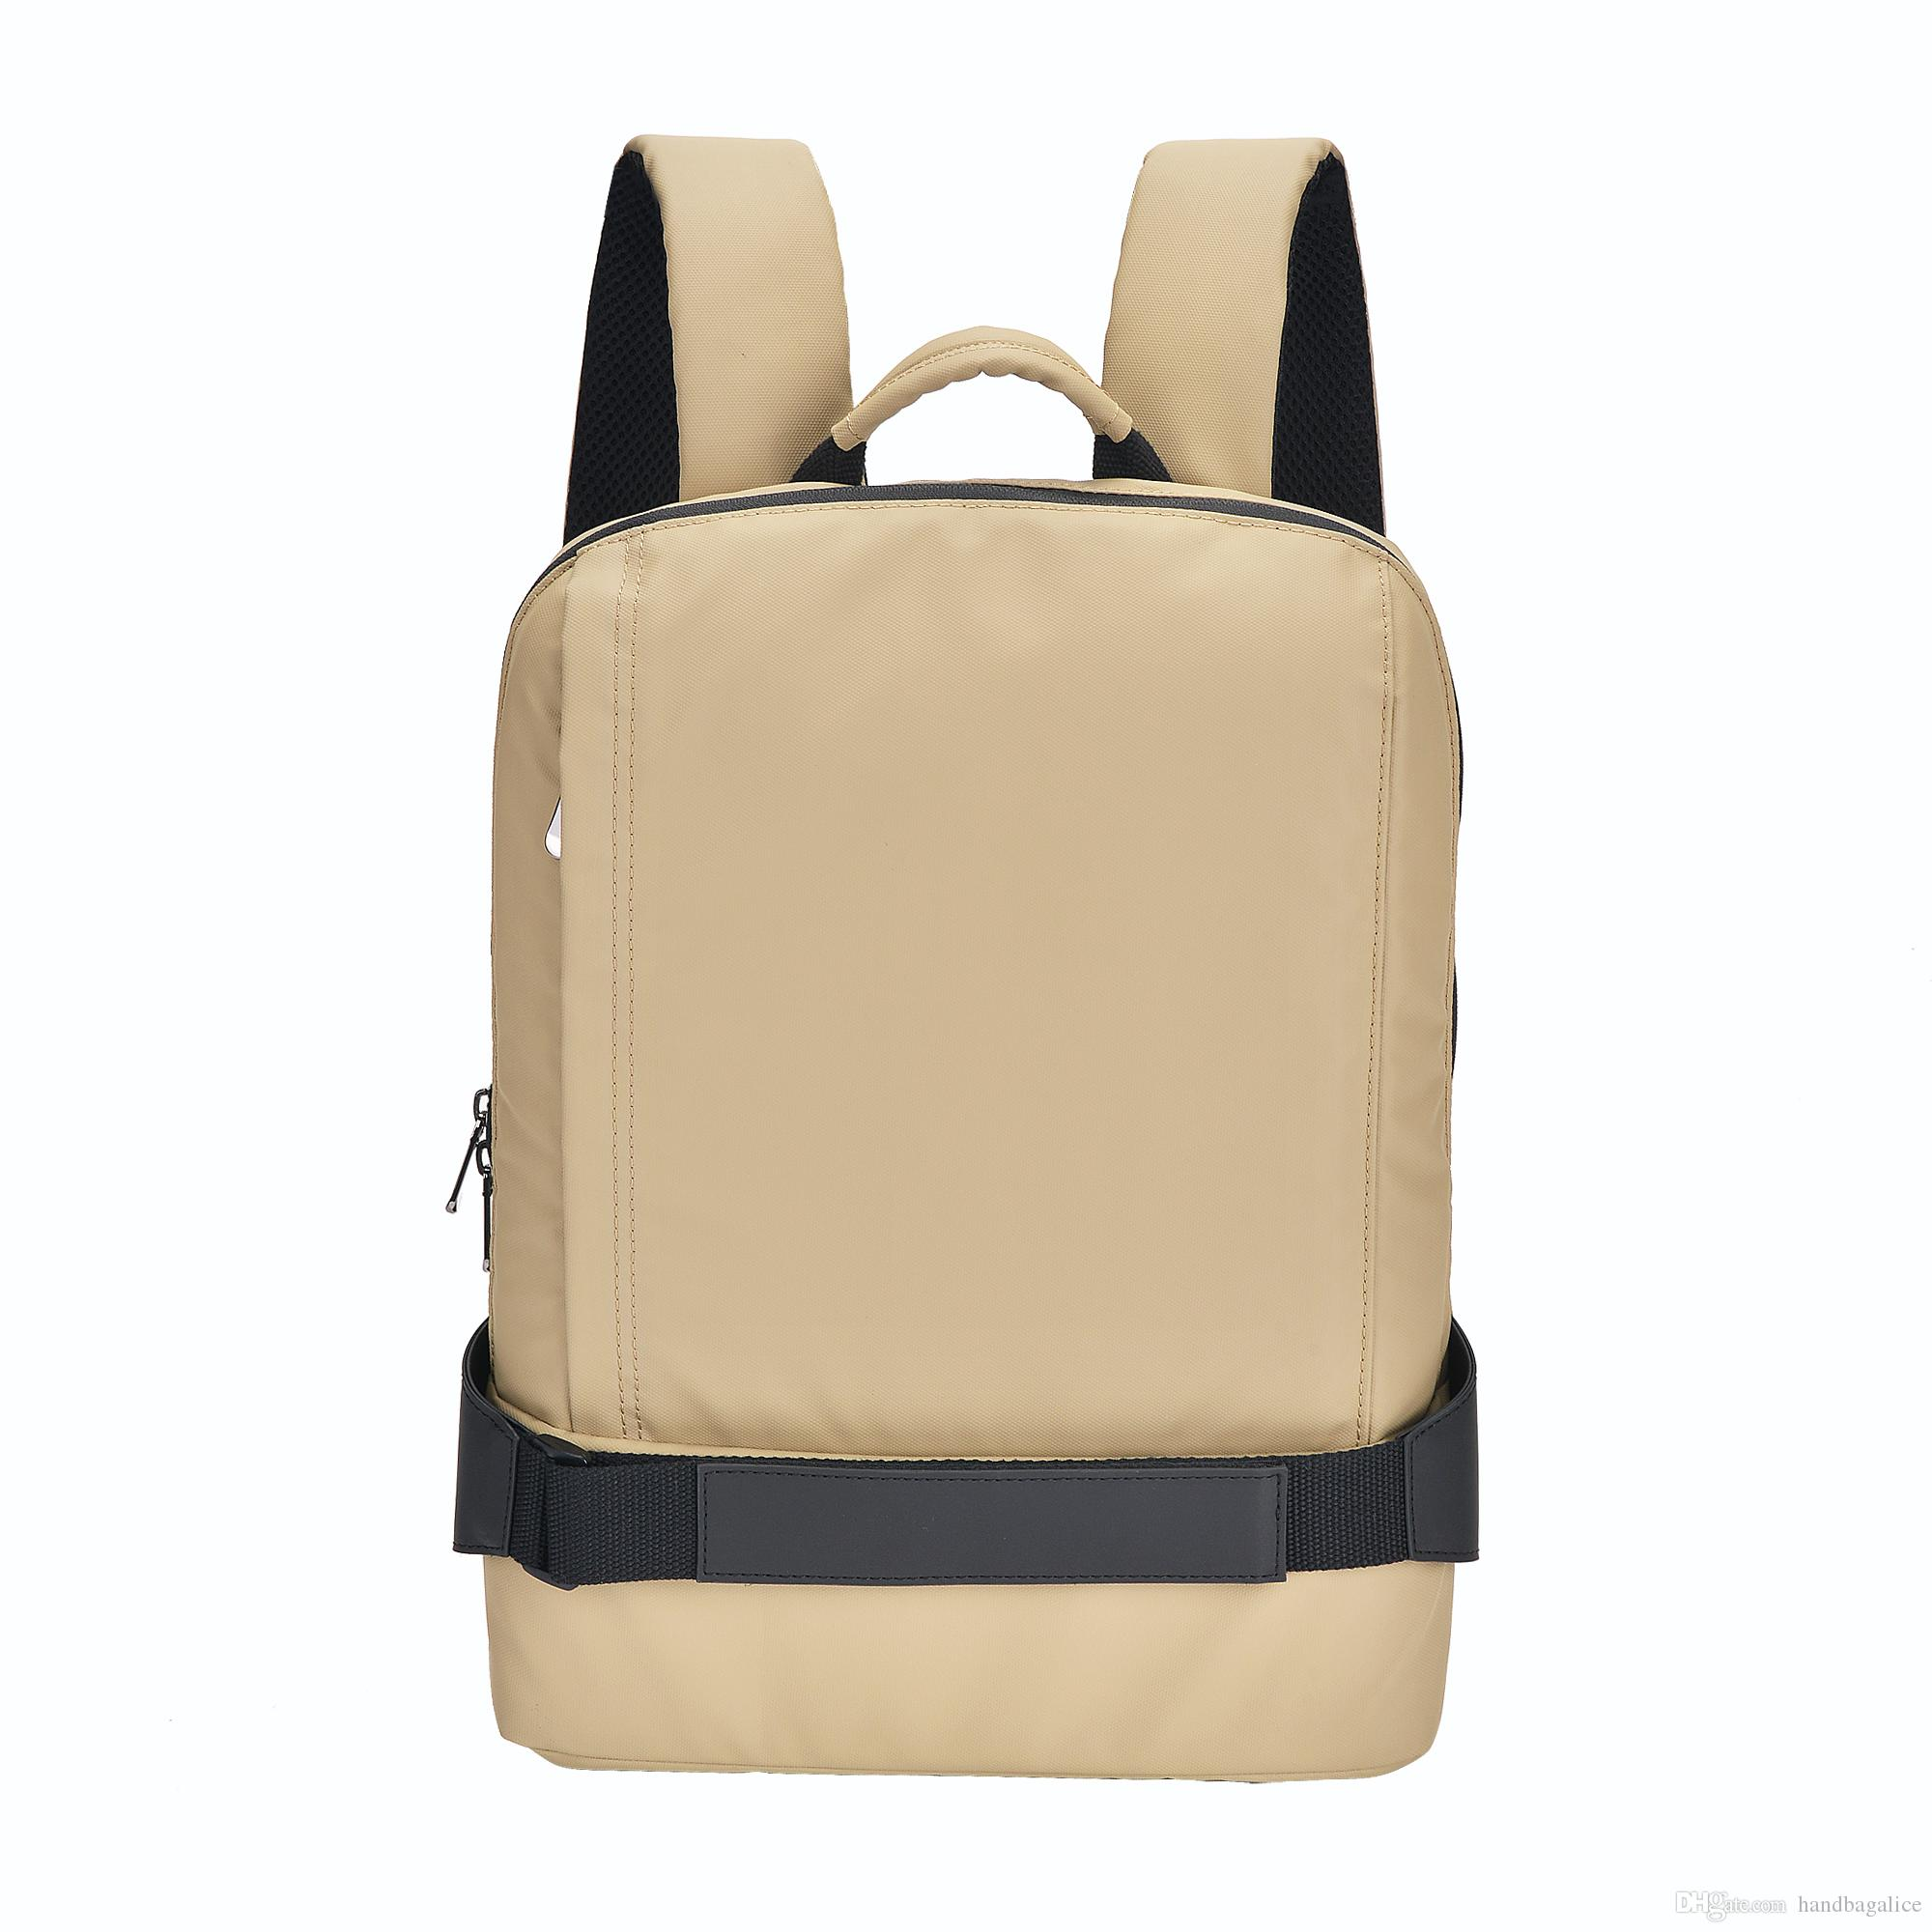 c0bf3adc16 Waterproof Computer Backpack - CEAGESP